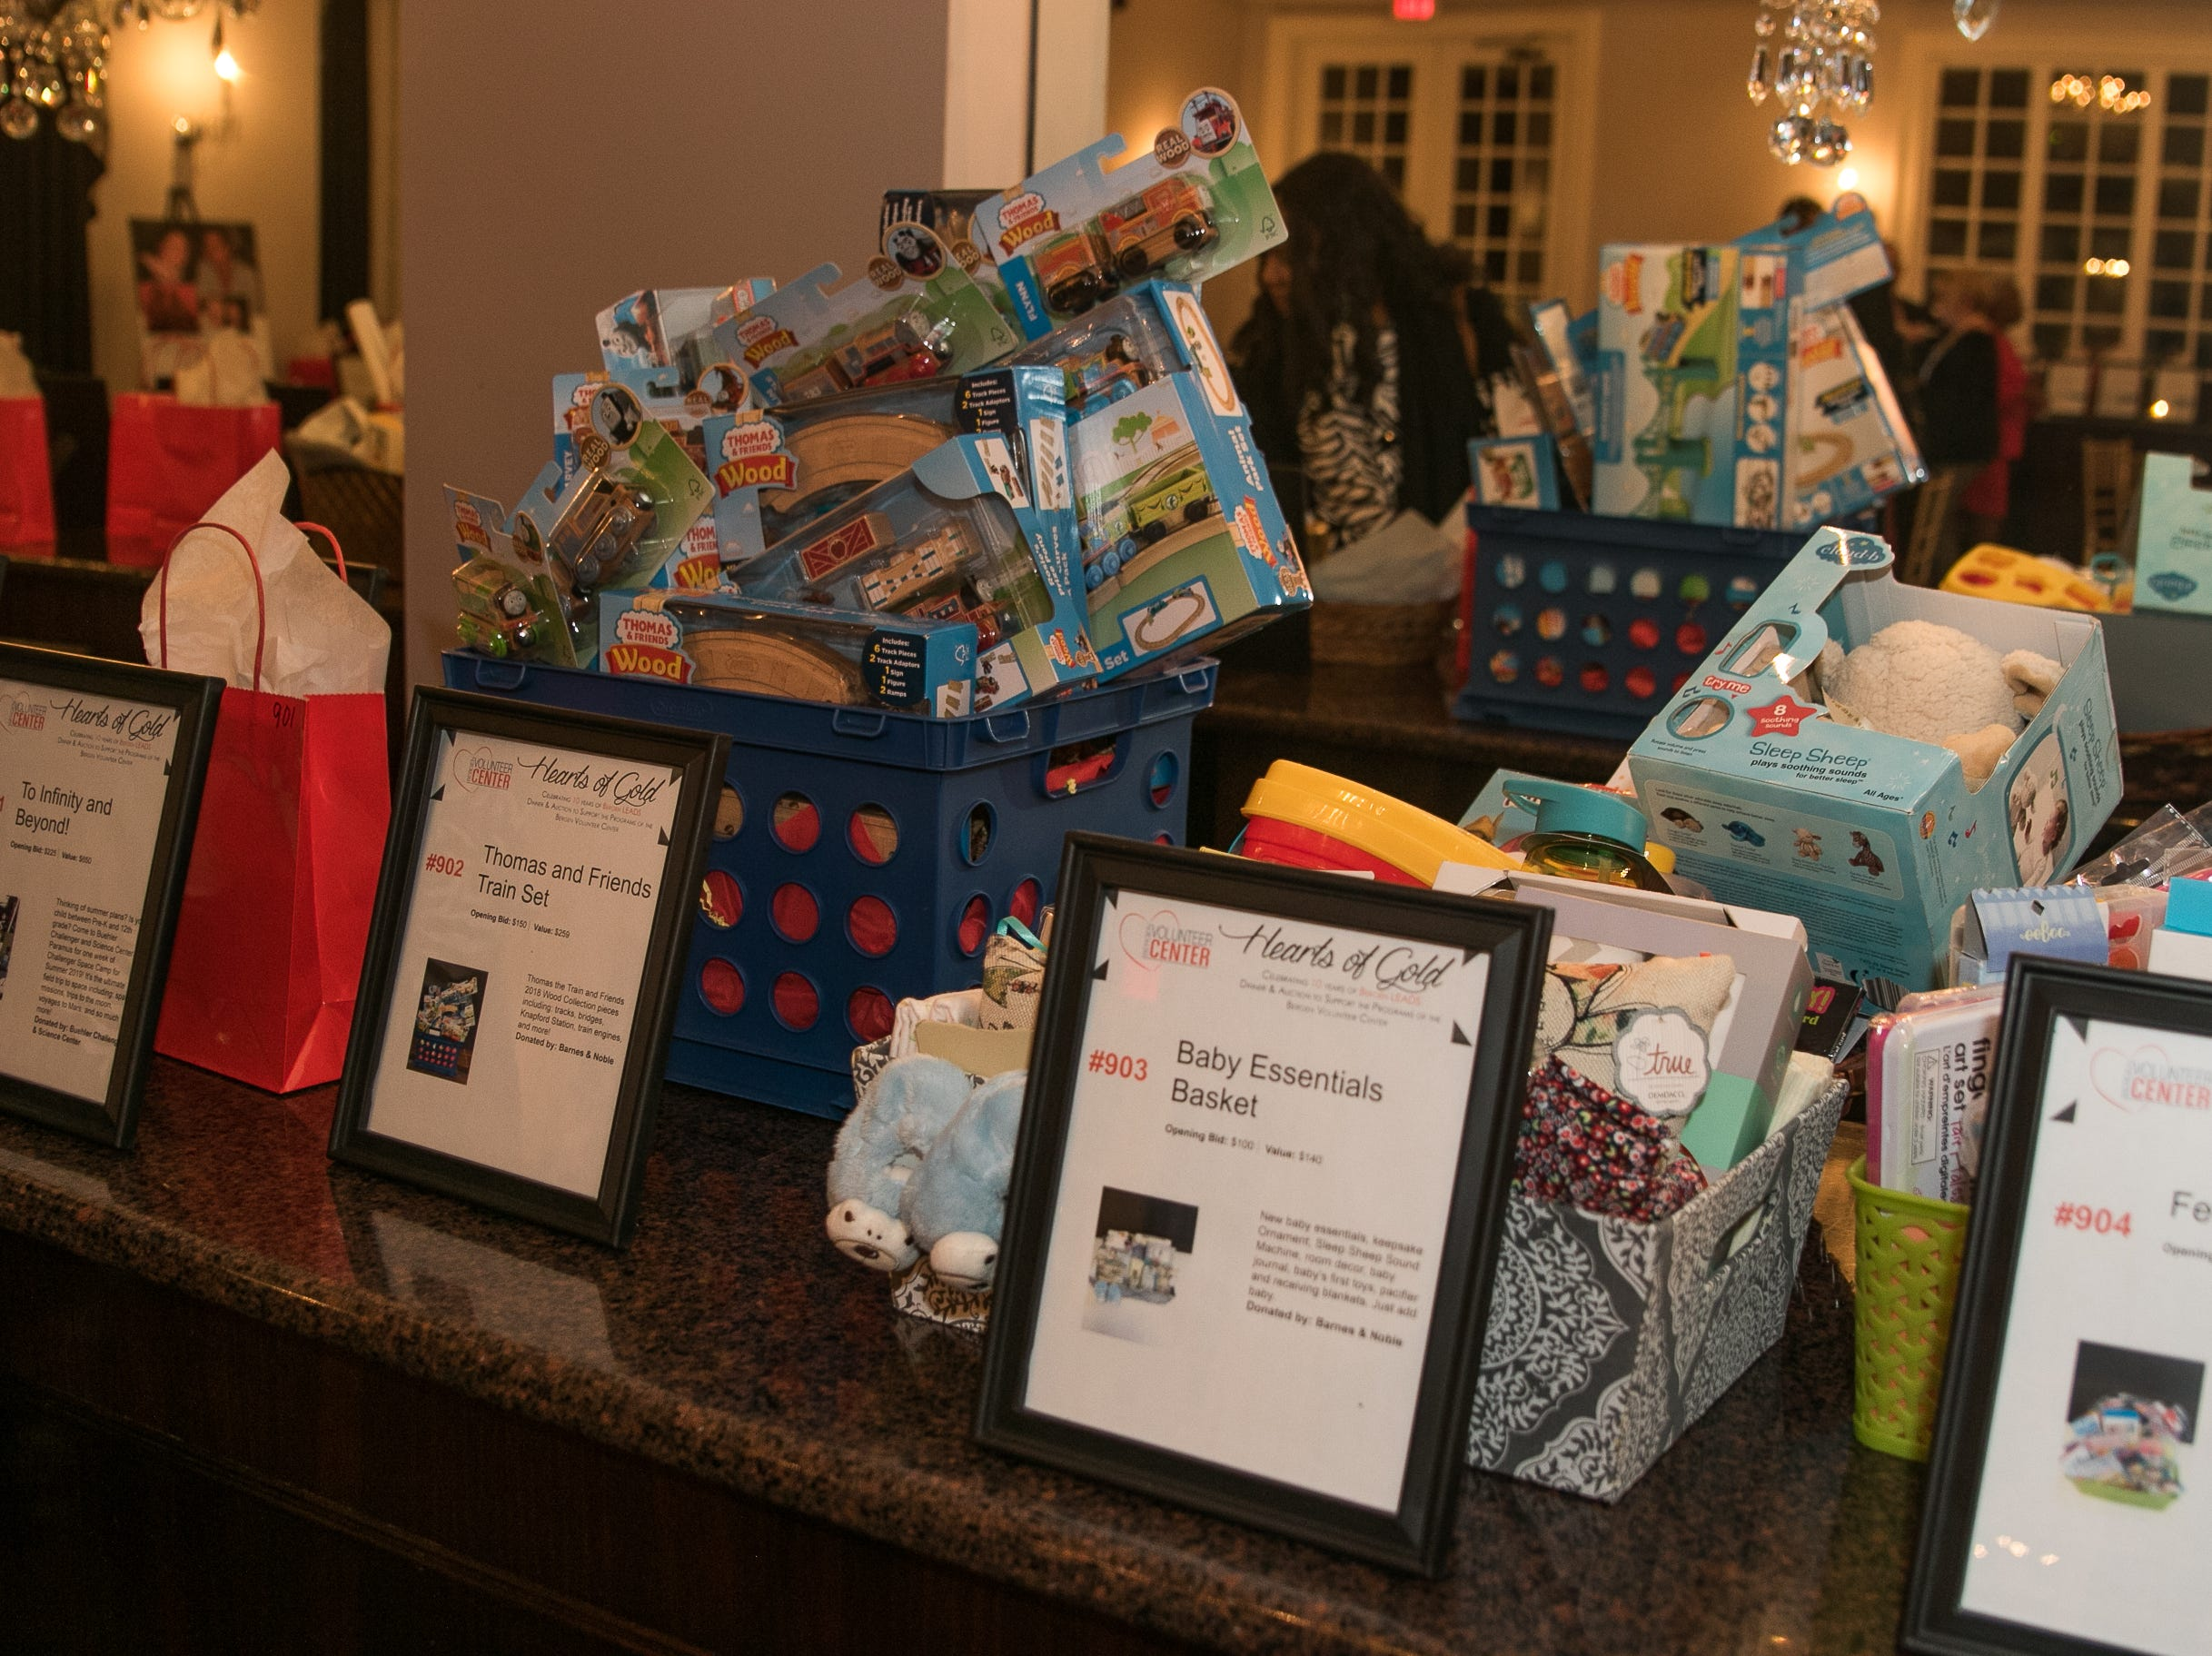 The Bergen Volunteer Center celebrated its 10th anniversary of the Bergen LEADS program at The Hearts of Gold Dinner and Auction at the Stony Hill Inn in Hackensack. 11/08/2018